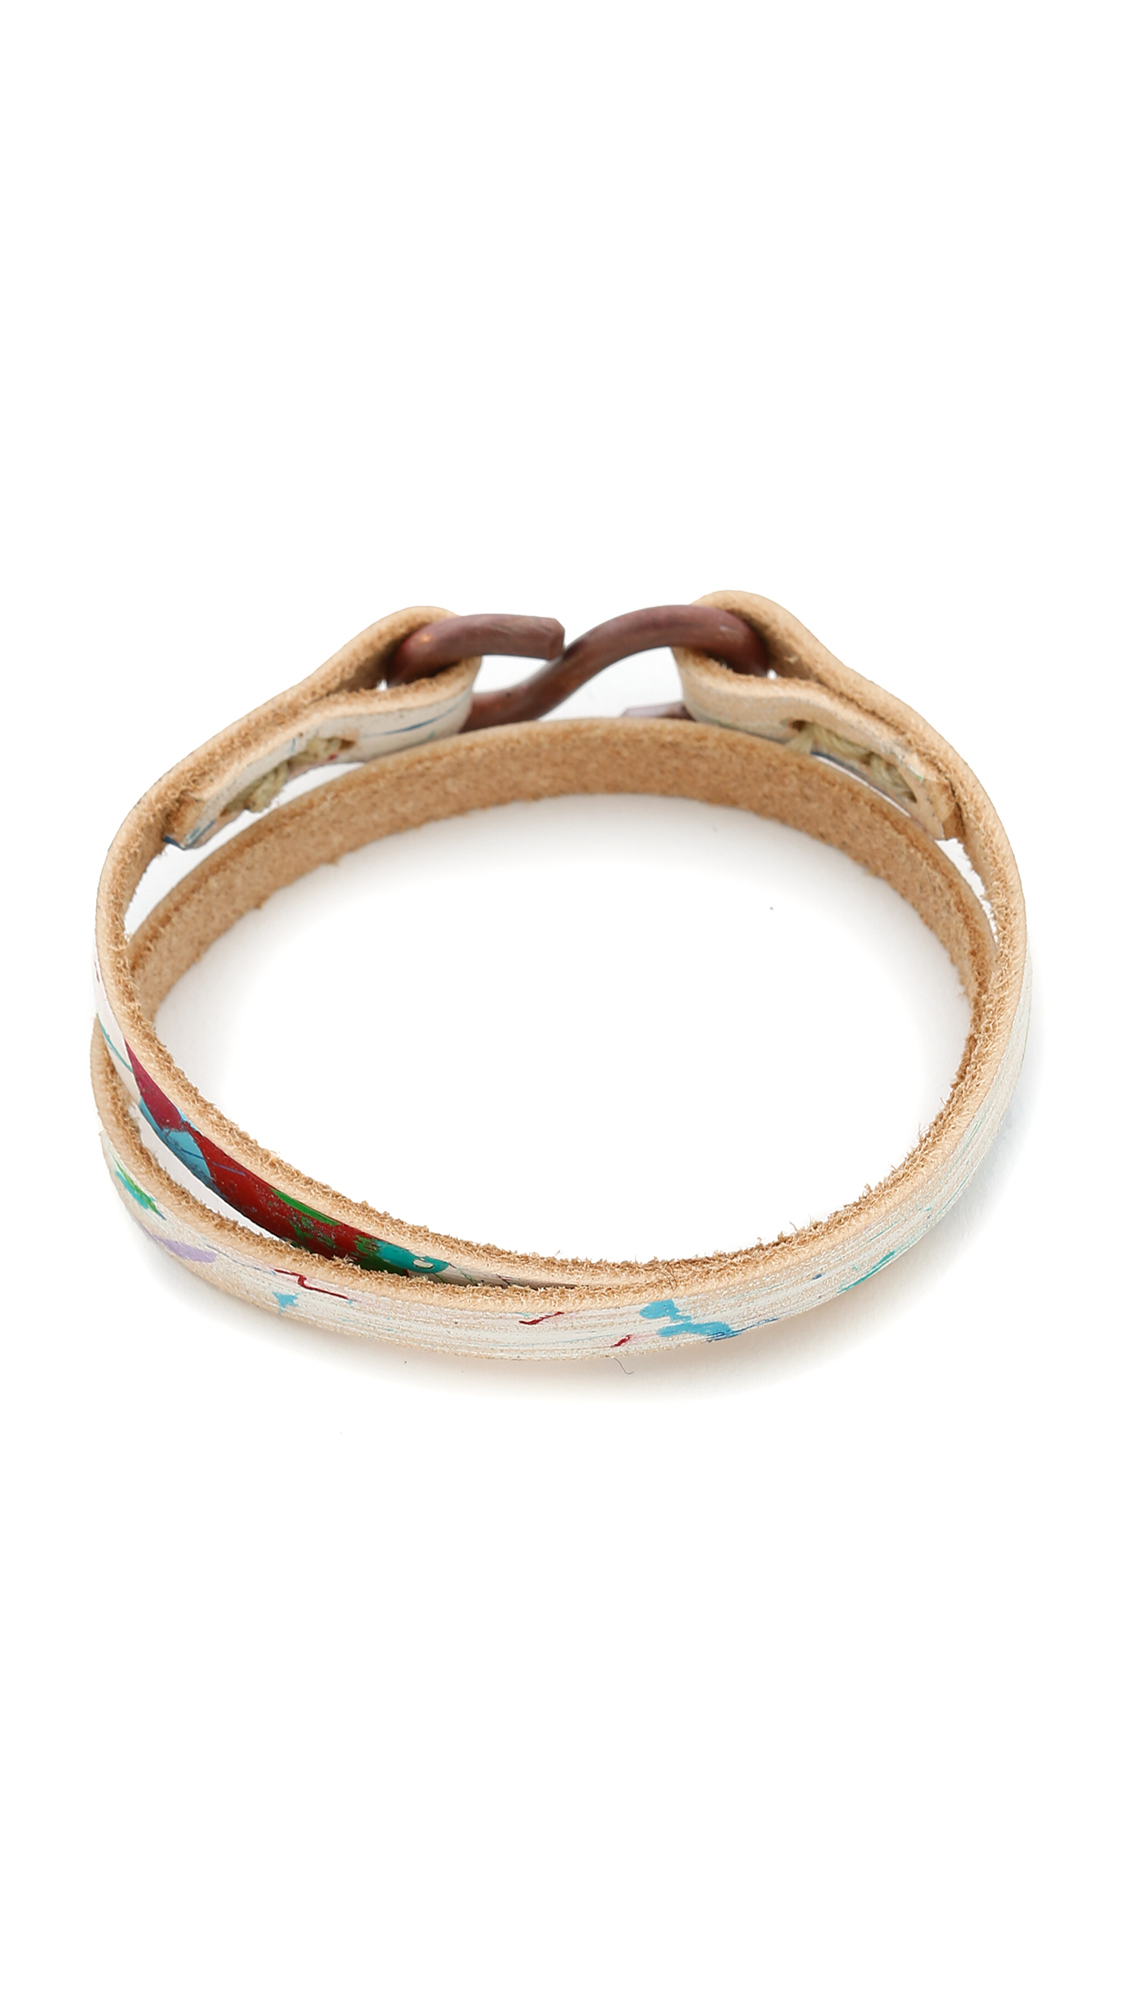 Cause And Effect Paint Splatter Leather Wrap Bracelet In. Photography Necklace. Belly Button Rings. Alternative Wedding Rings. Real Gold Pendant. White Gold Bracelet. 10000 Wedding Rings. Real Gold Ankle Bracelets. V Shaped Necklace